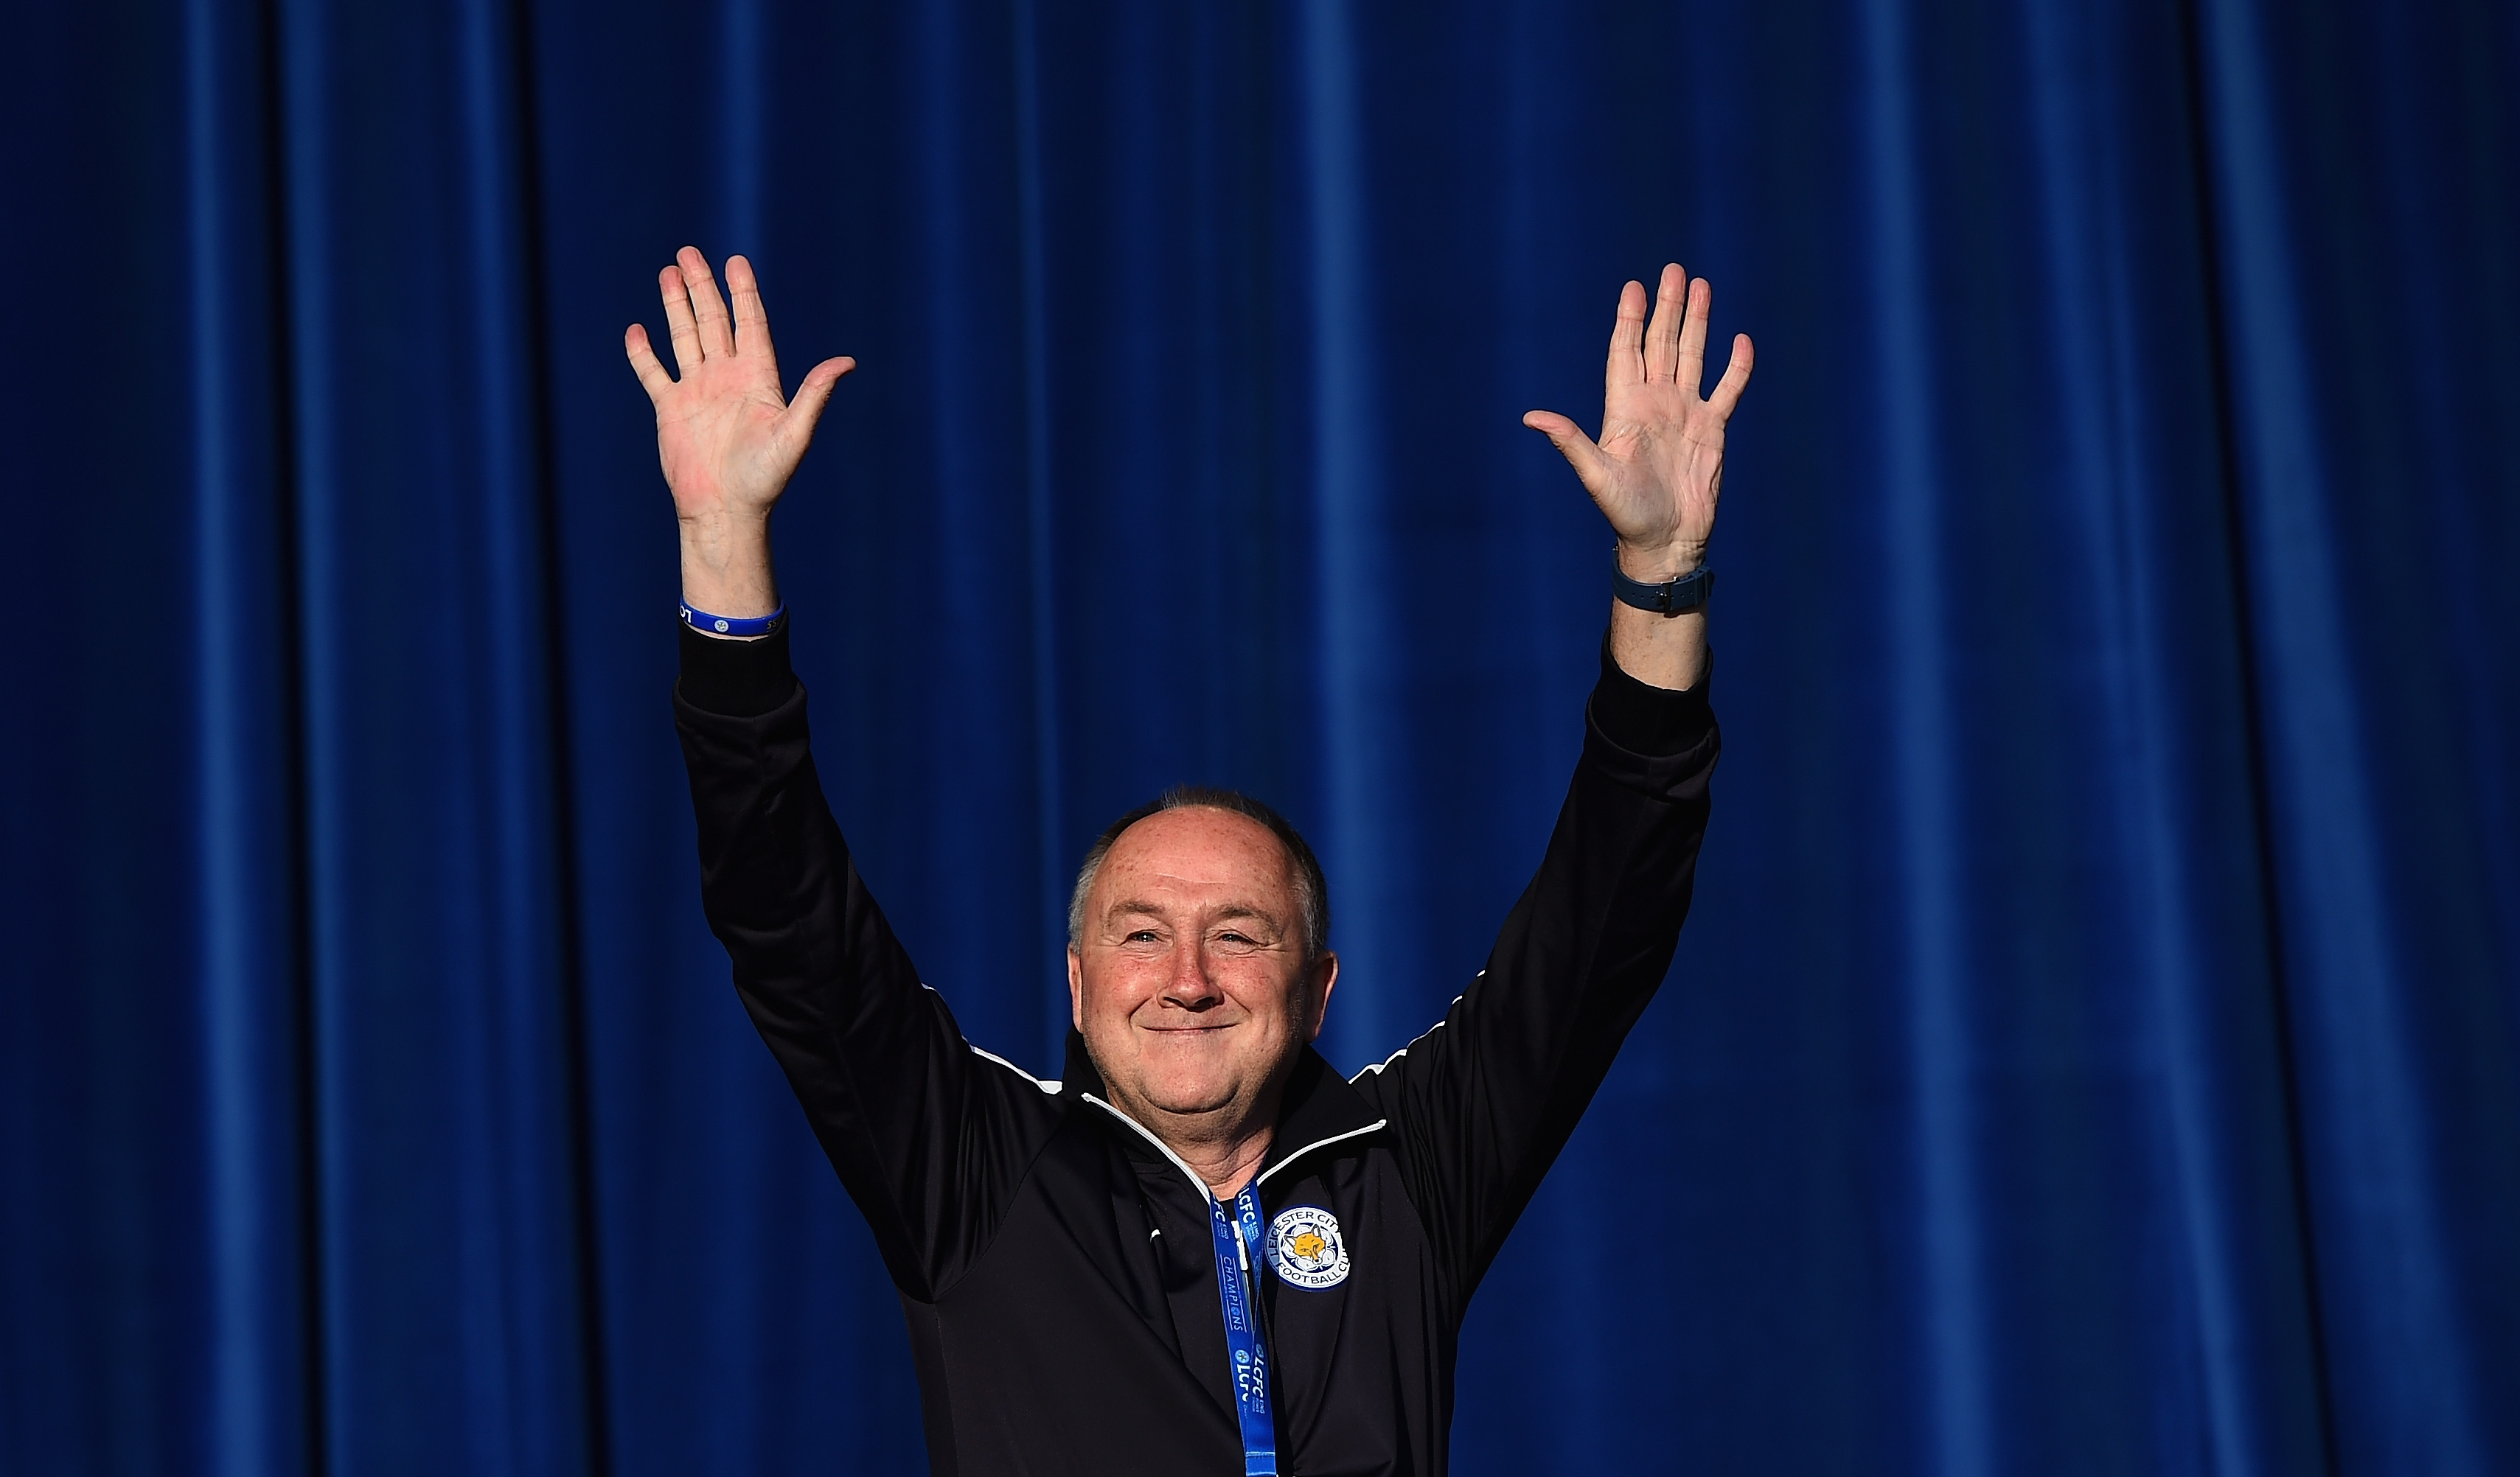 Leicester City turn down approach from Everton for assistant manager Steve Walsh